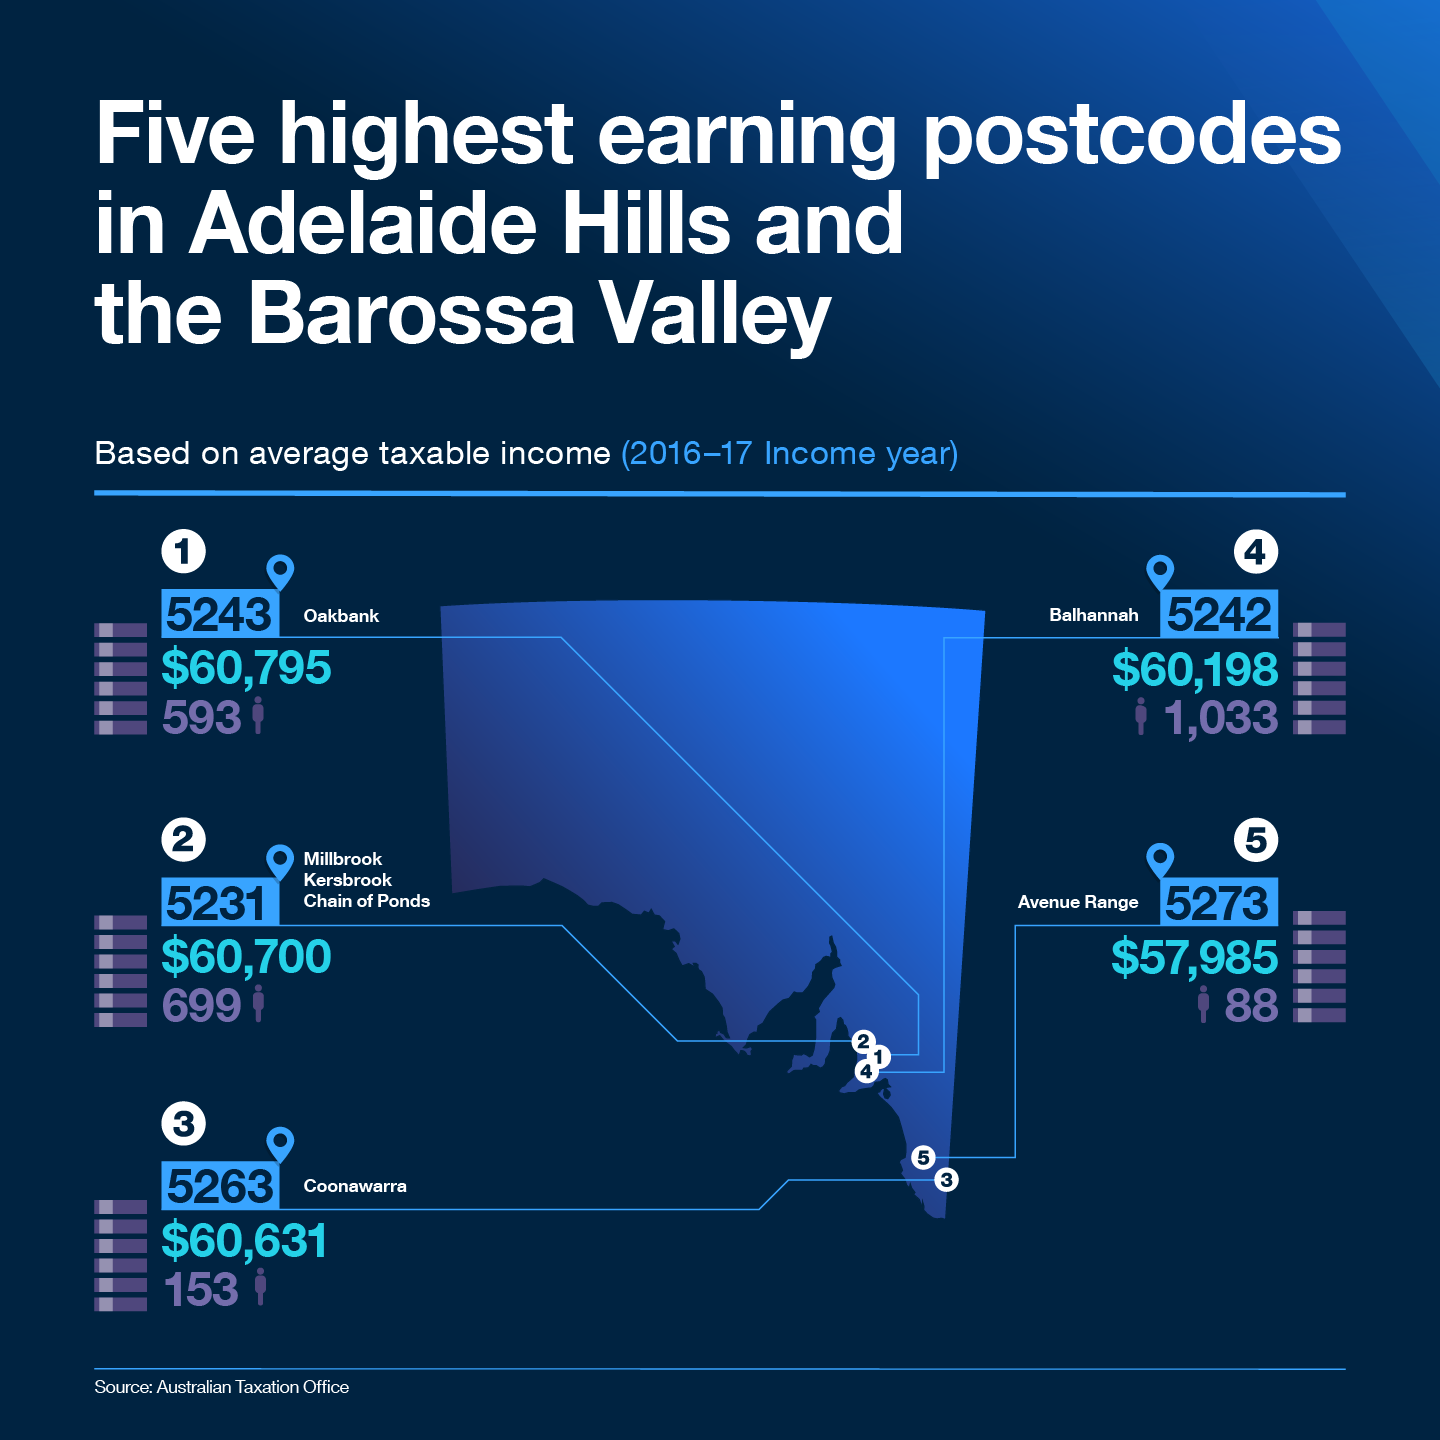 Five highest earning postcodes in Adelaide Hills and the Barossa Valley  Based on average taxable income (2016-17 Income year)  1. The highest taxable income of $60,795 was recorded in 5243 postcode which covers Oakbank.  2. The second highest taxable income of $60,700 was recorded in 5231 postcode which covers Millbrook, Kersbrook and Chain of Ponds.  3. The third highest taxable income of $60,631 was recorded in 5263 postcode which covers Coonawarra.  4. The fourth highest taxable income of $60,198 was recorded in 5242 postcode which covers Balhannah.  5. The fifth highest taxable income of $57,985 was recorded in 5273 postcode which covers Avenue Range.